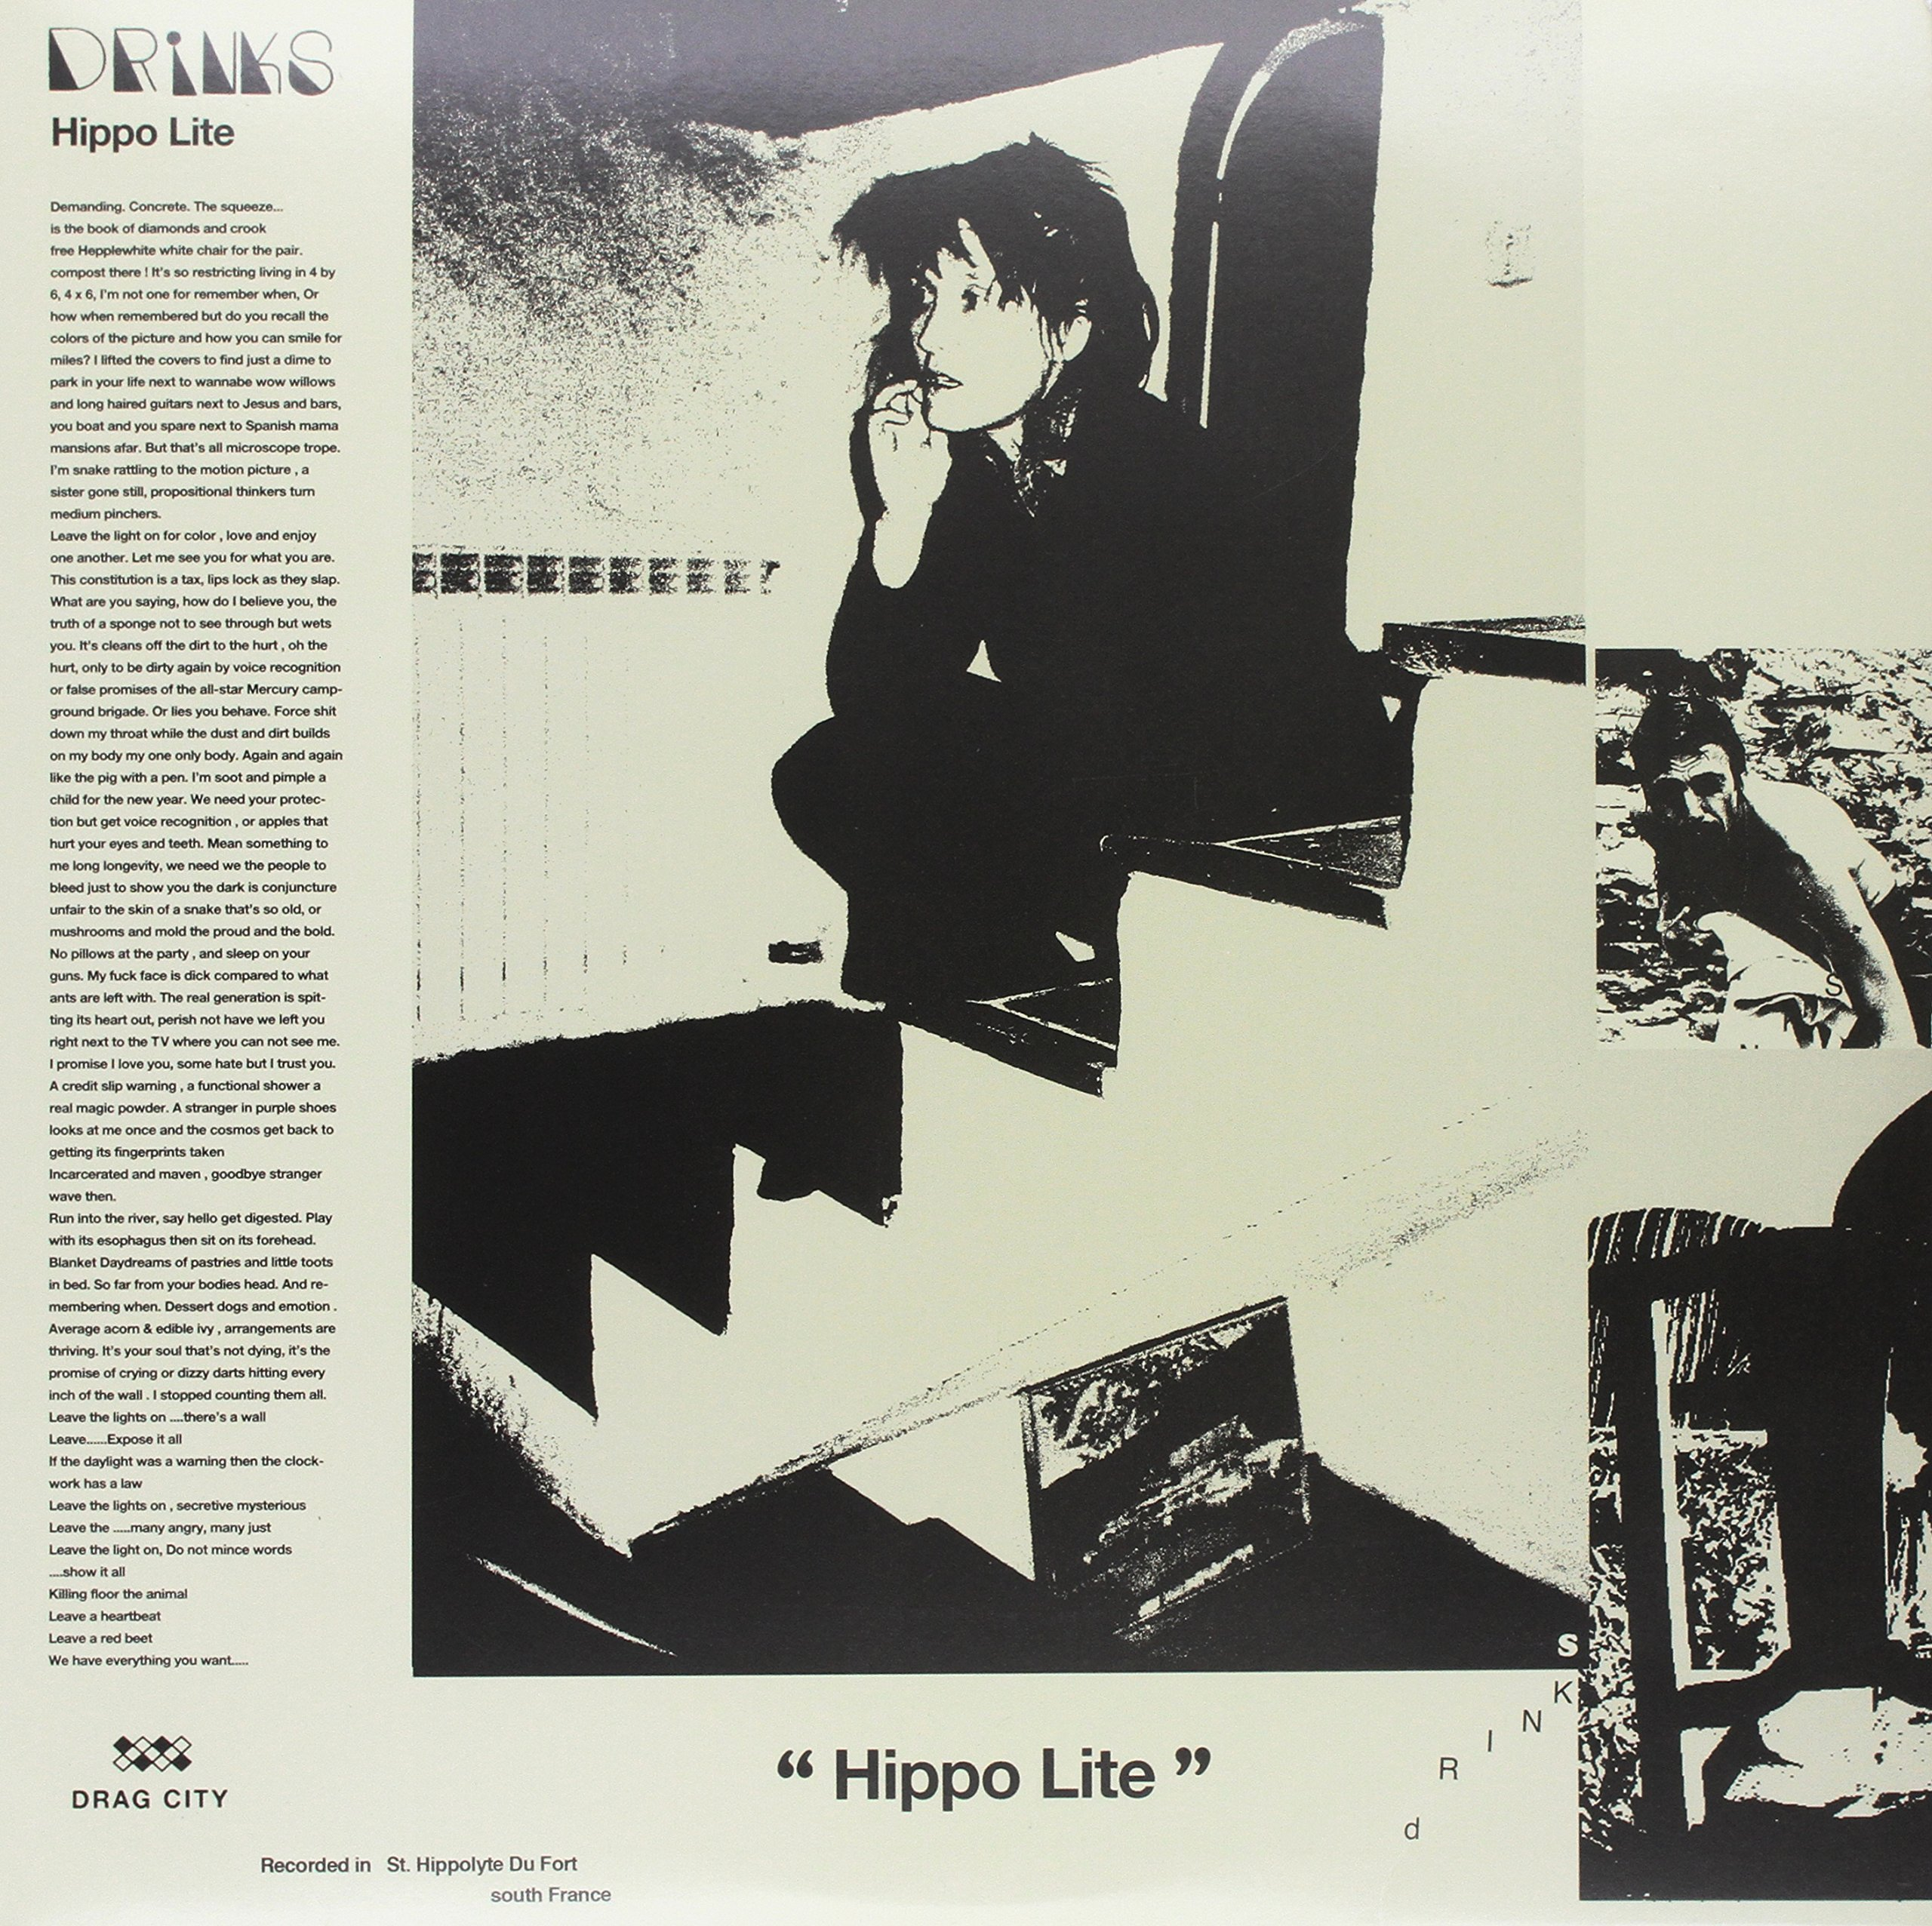 Vinilo : The Drinks - Hippo Lite (LP Vinyl)